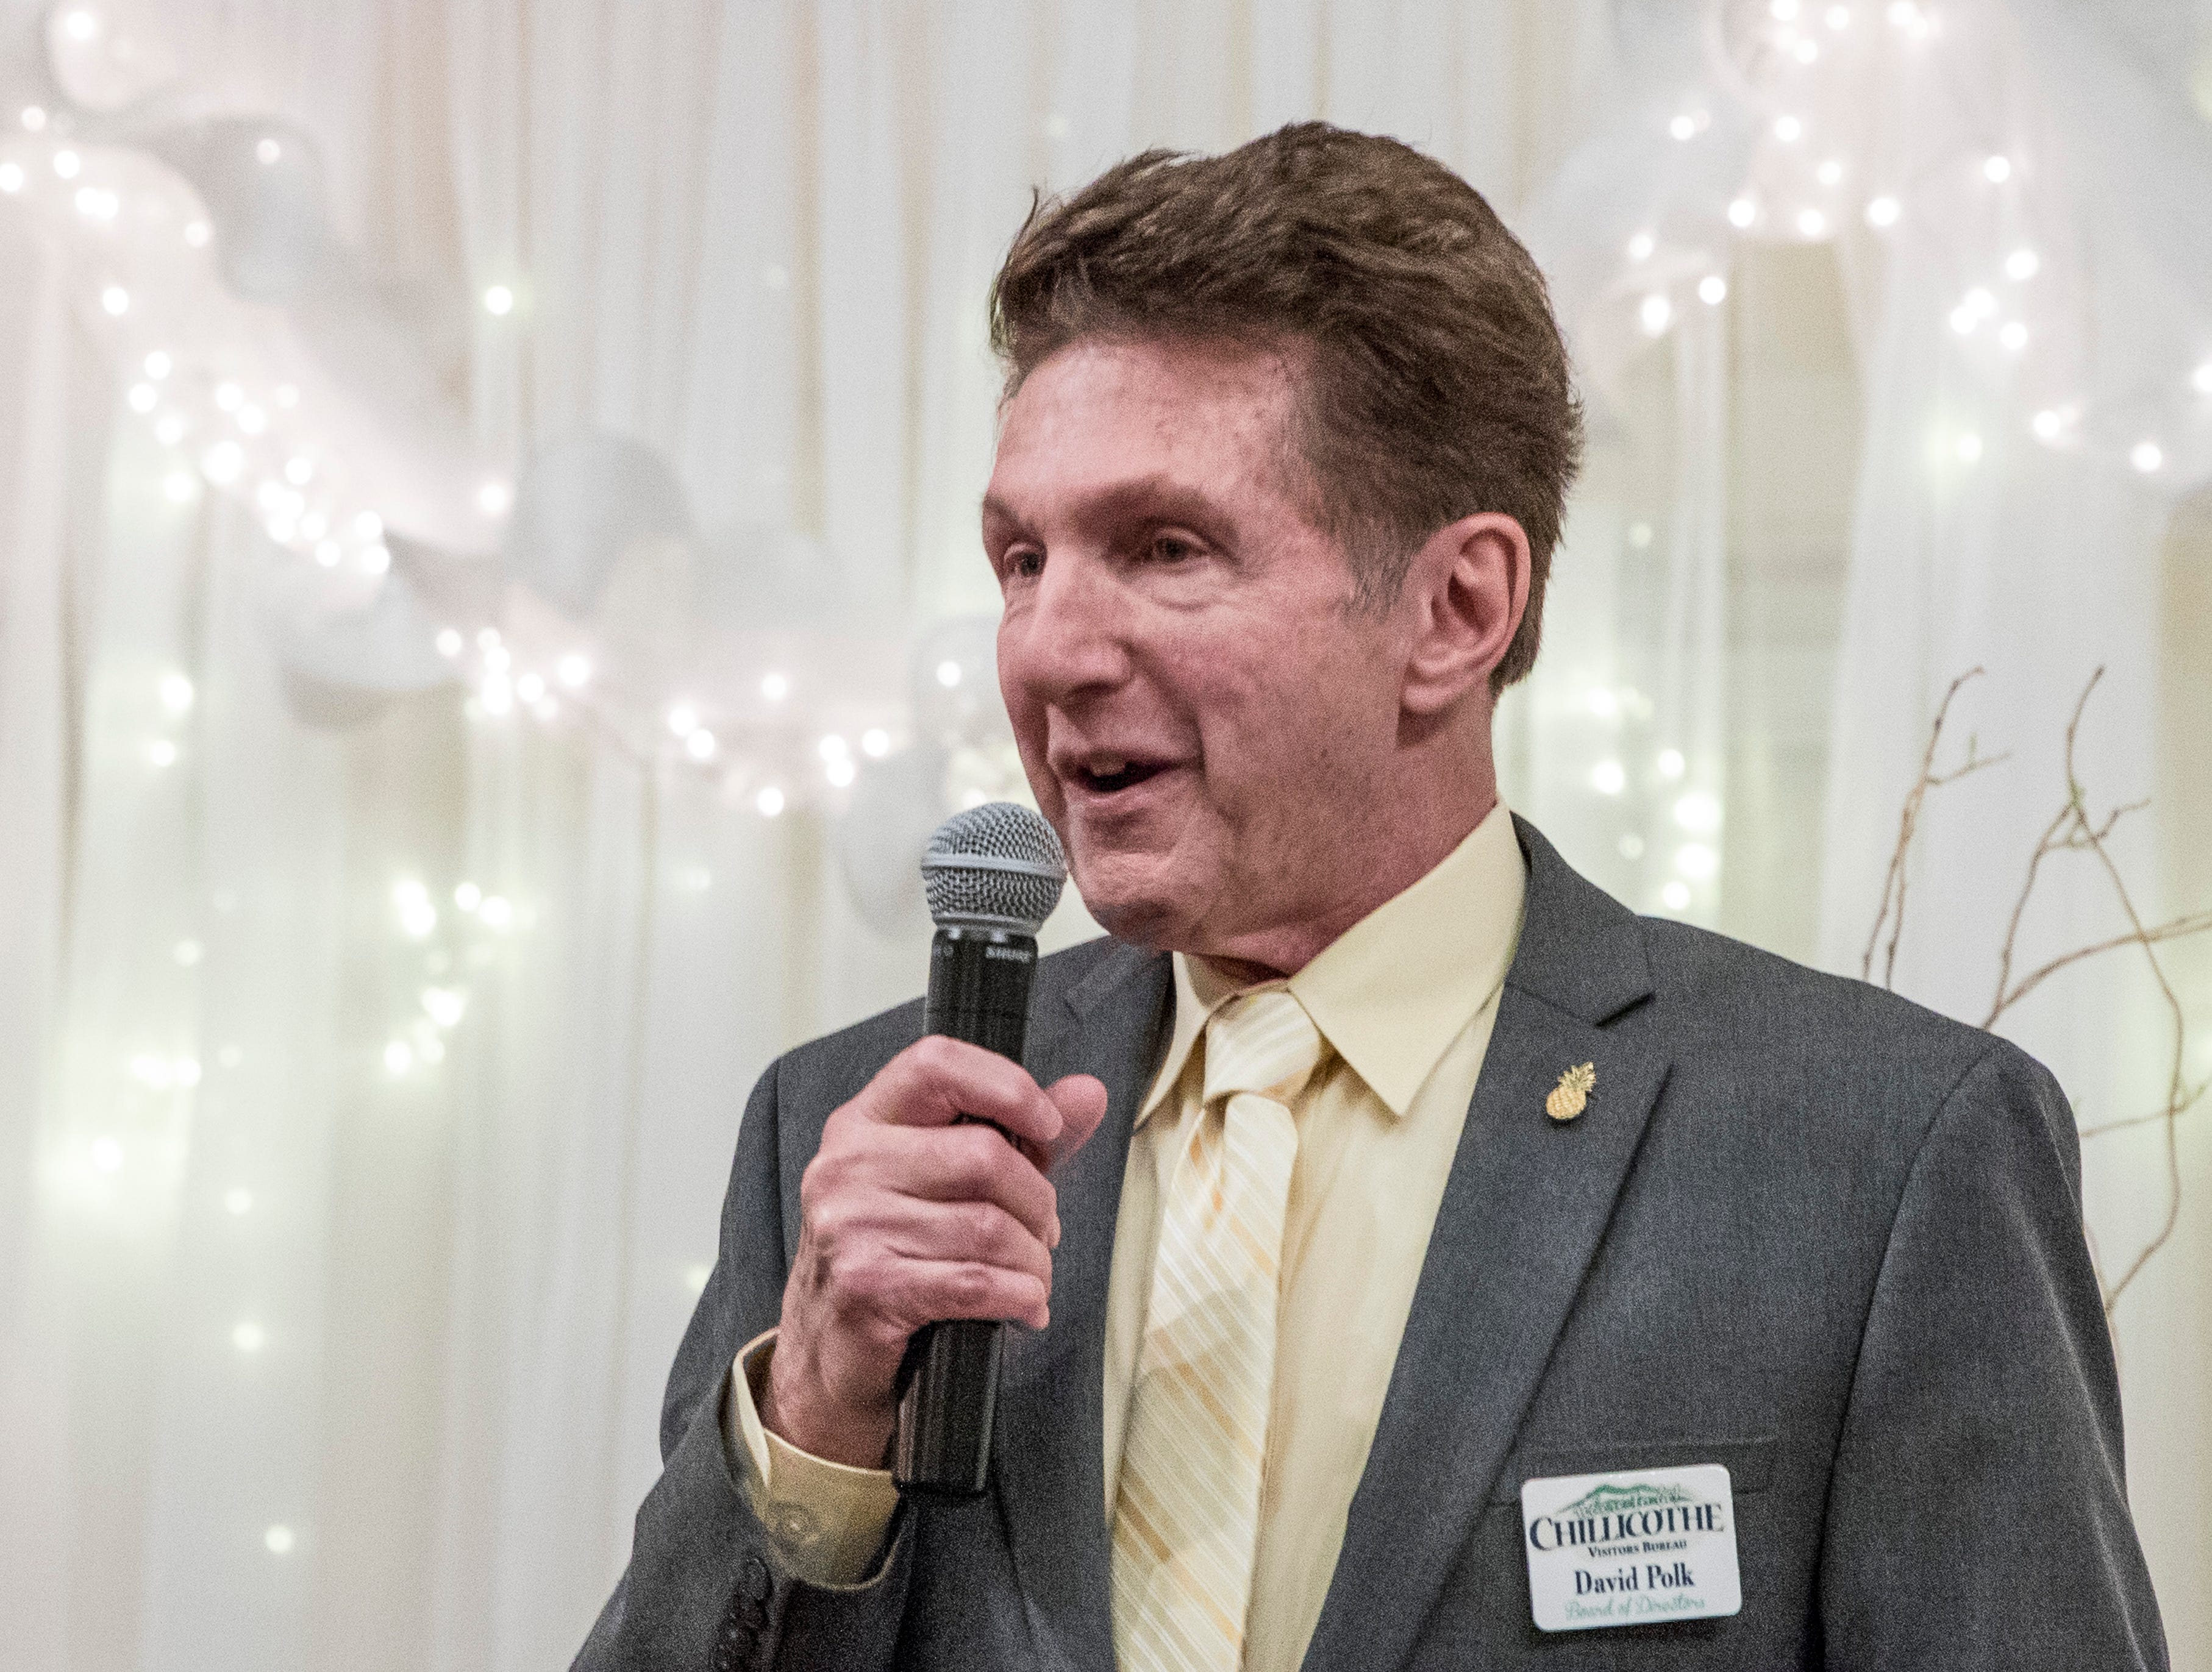 David Polk, past president of the of the Ross-Chillicothe Convention & Visitors Bureau's executive board, emceed the 2019 Pineapple Award banquet at the Christopher Conference Center in Chillicothe, Ohio, on May 6, 2019.